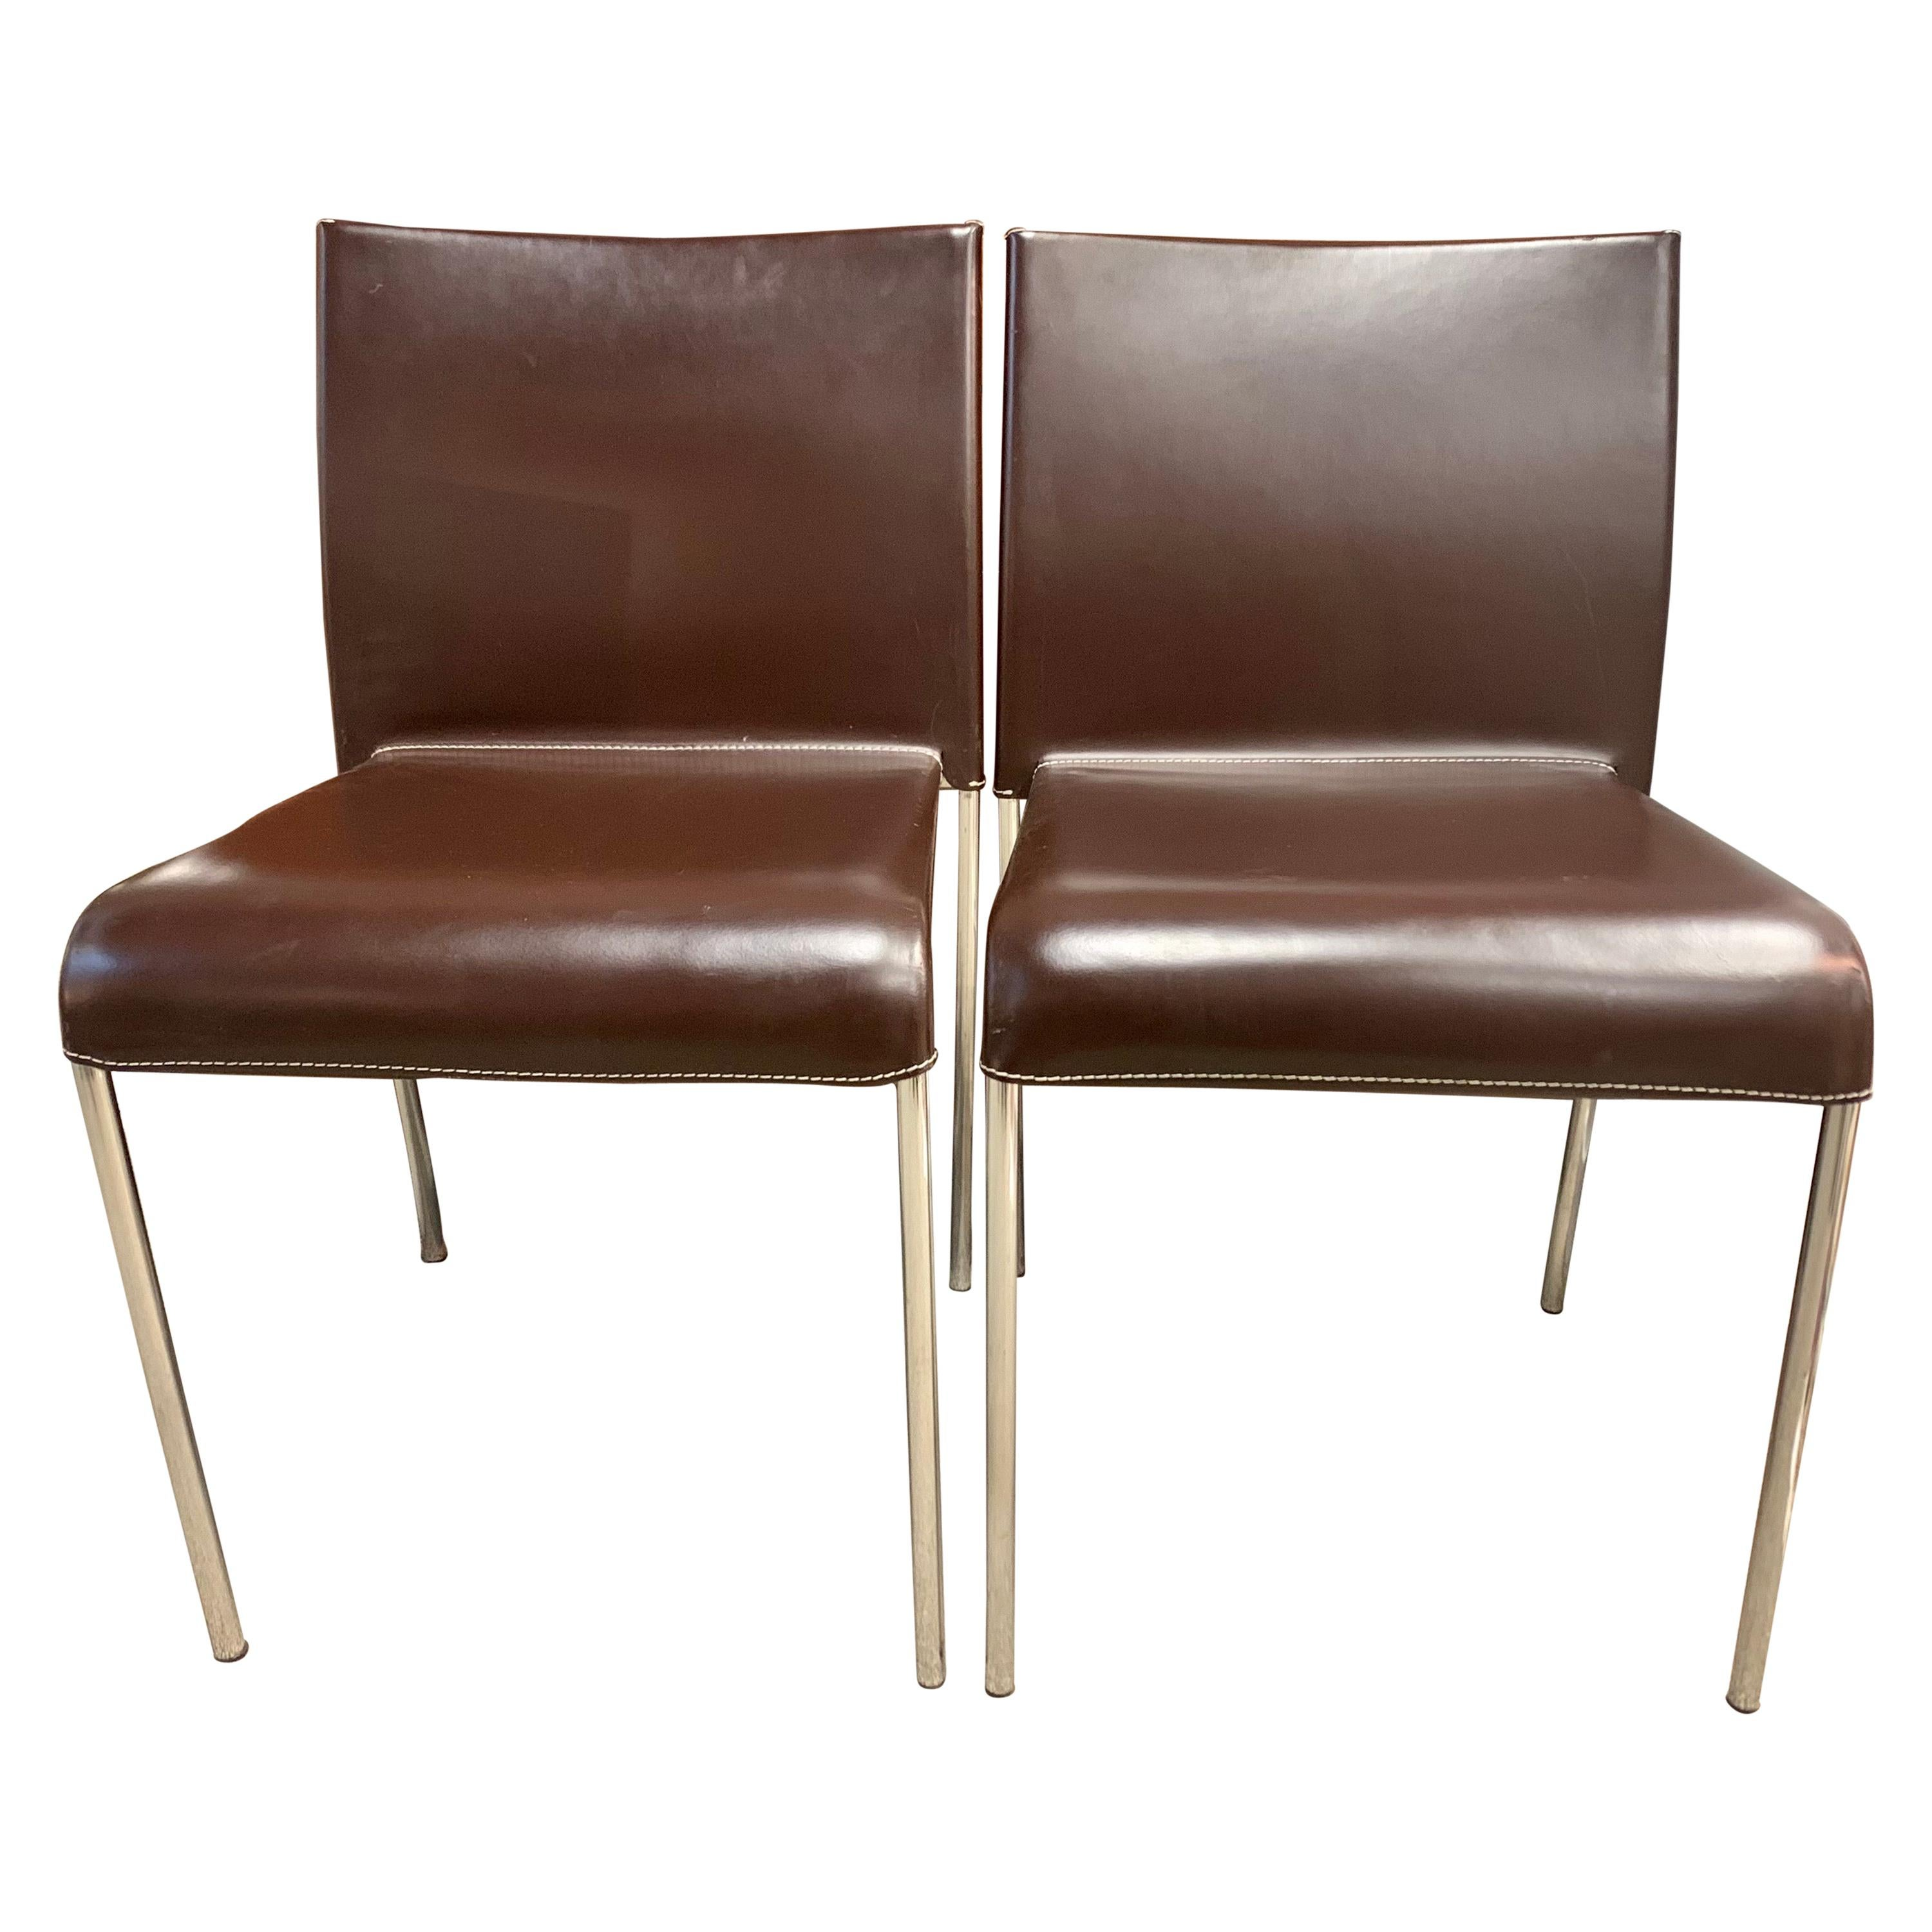 Pair of Potocco Italy Italian Brown Leather Dining Chairs